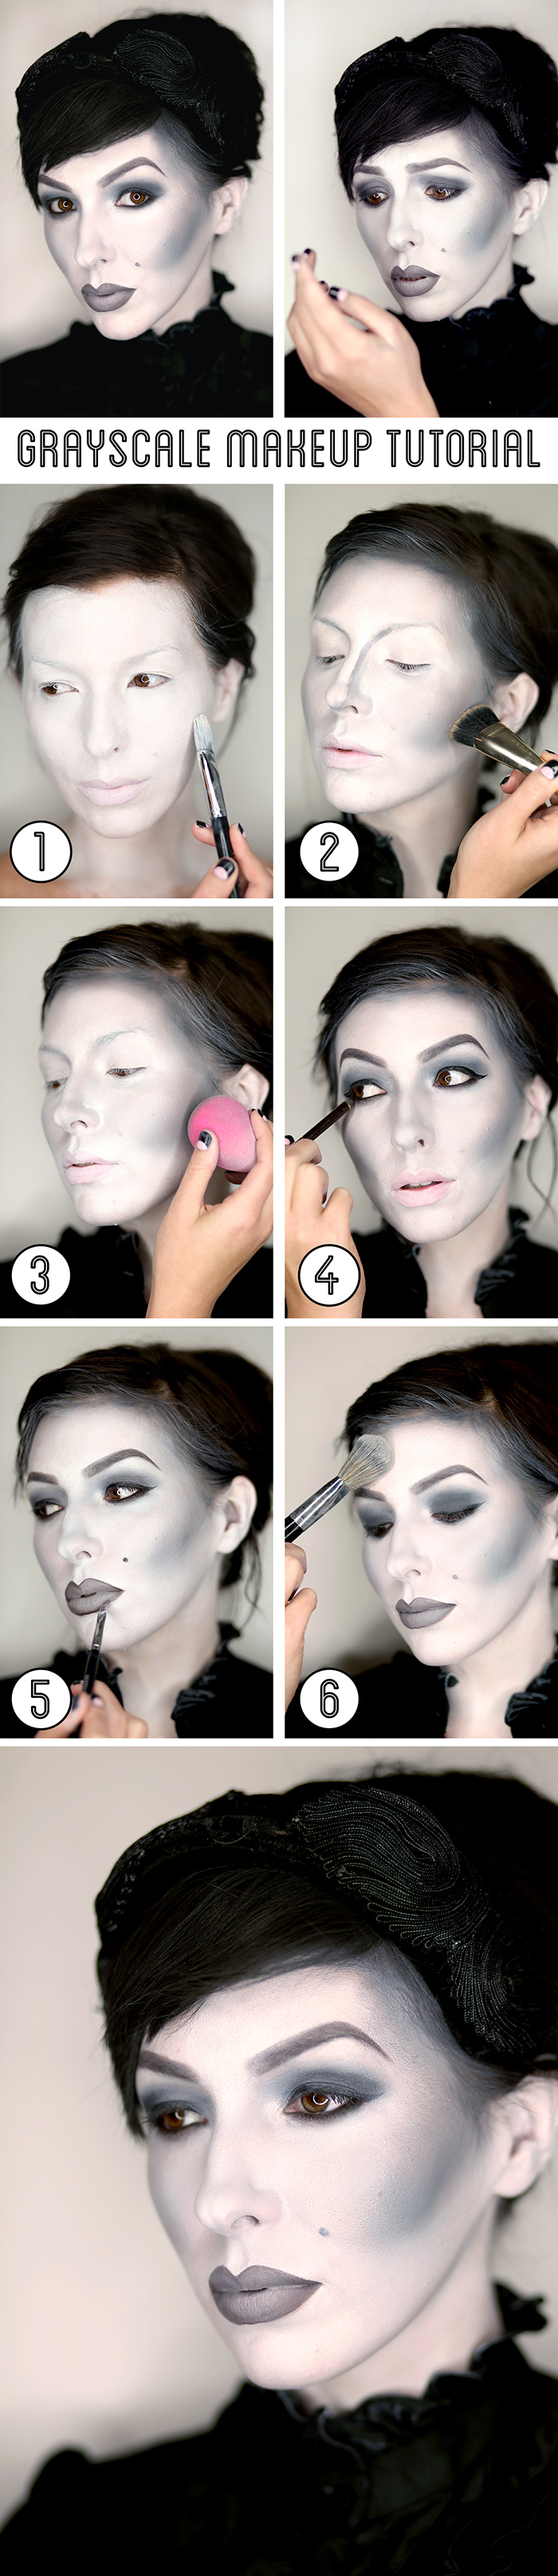 halloween black and white grayscale makeup tutorial